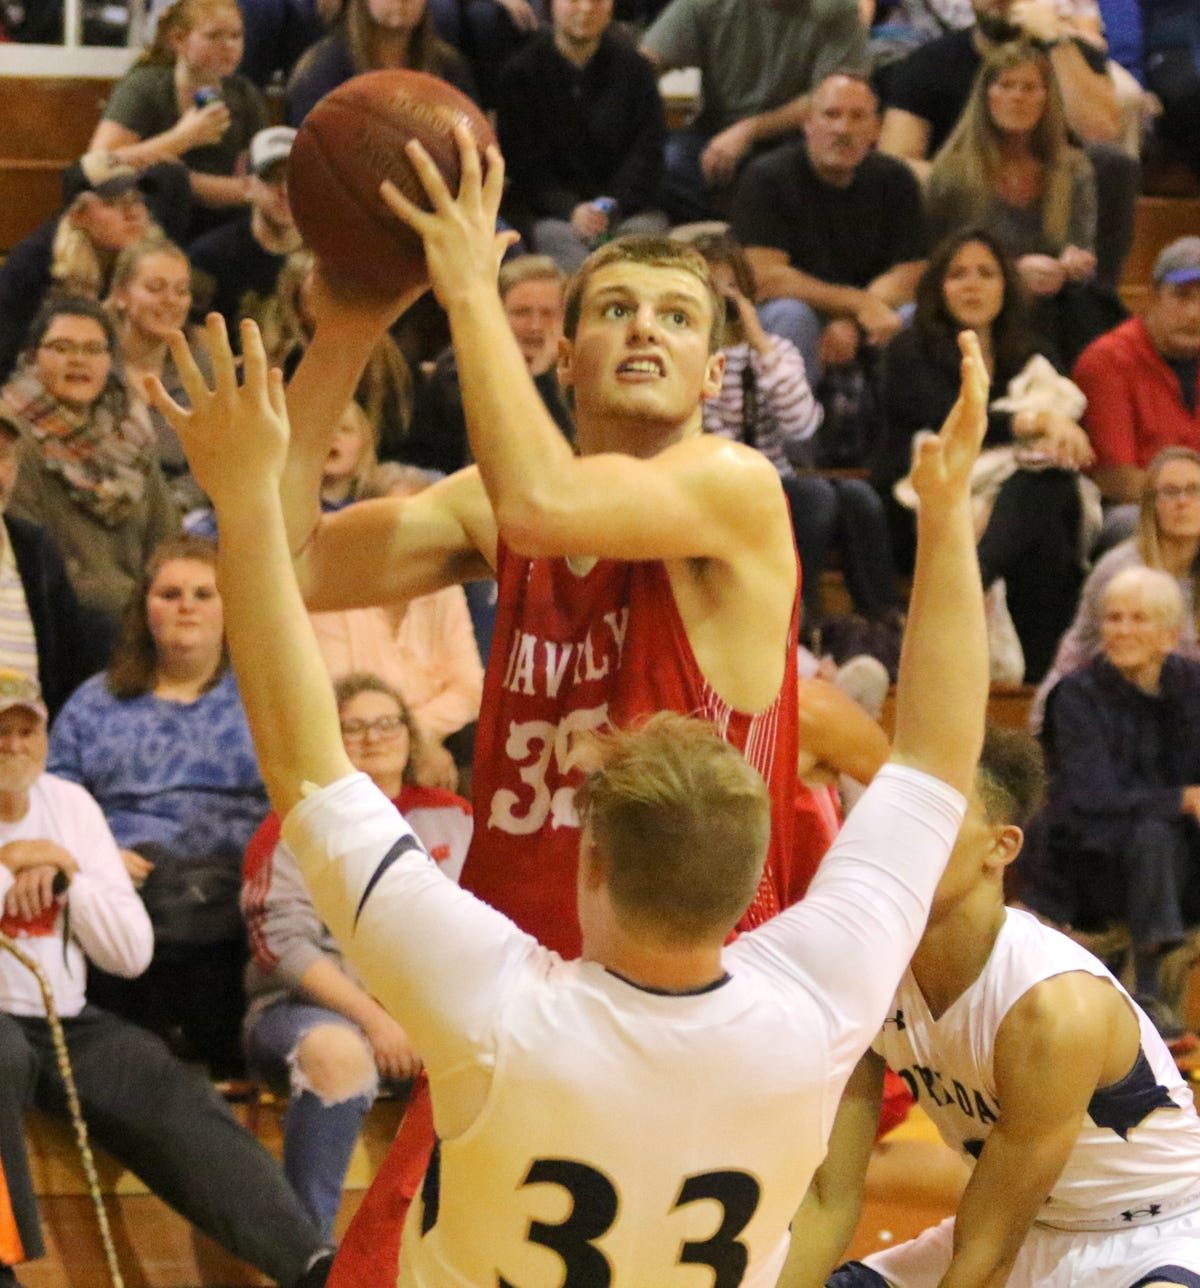 Scott Woodring scores 41 as Waverly holds off Notre Dame in boys hoops